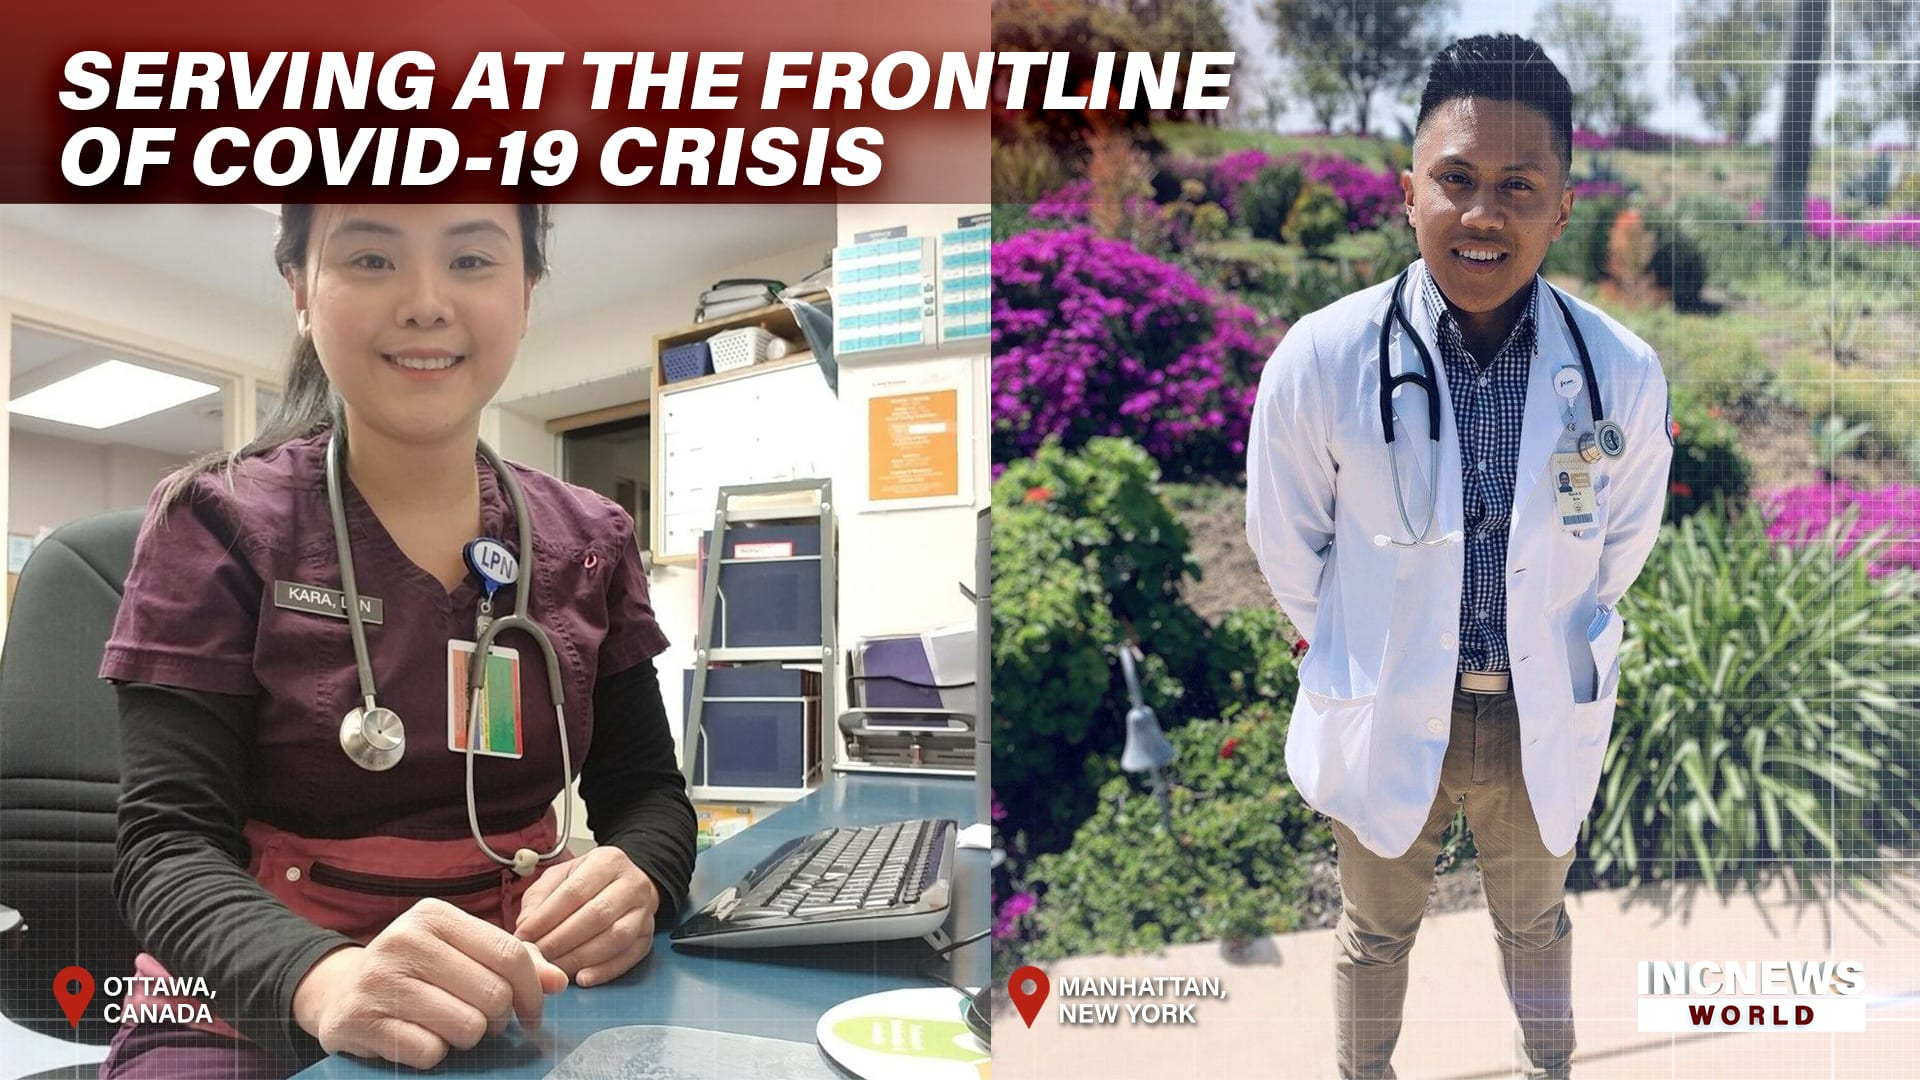 Serving at the Frontline of COVID-19 Crisis